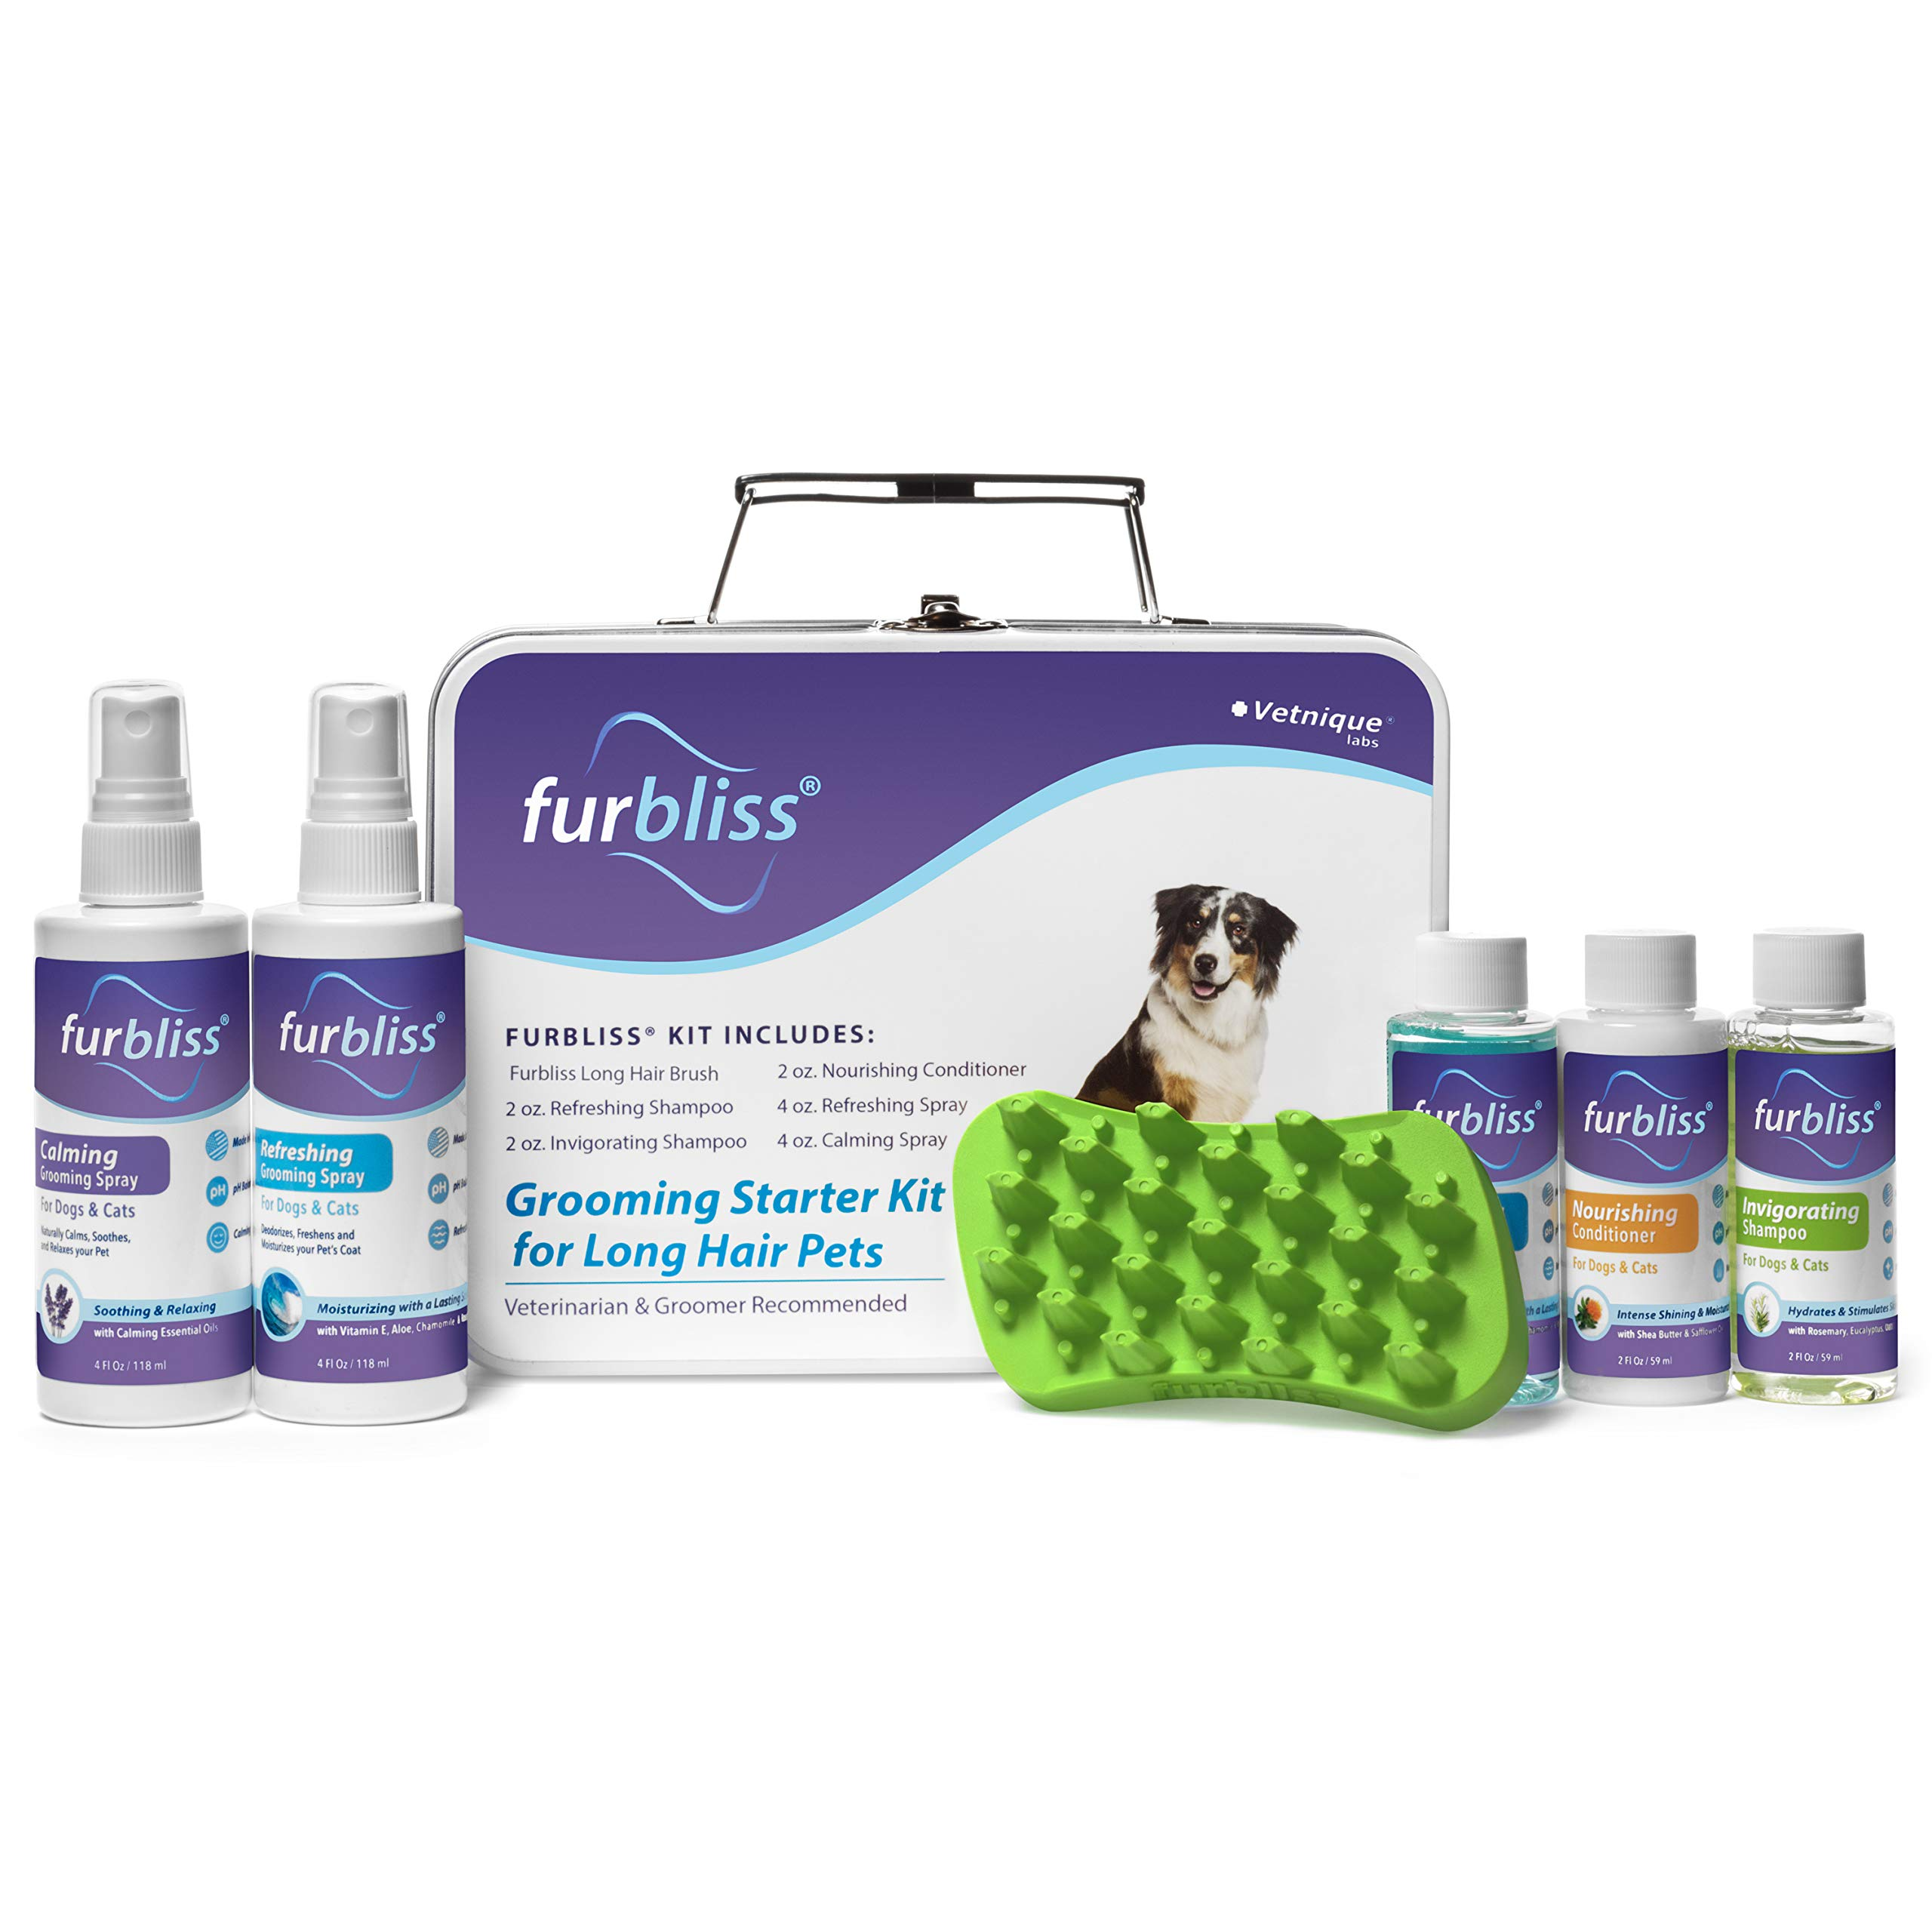 Furbliss Grooming Kit for Dogs, Cats and Pets with Long Hair - Cat/Dog Shampoo, Cat/Dog Conditioner, Cologne Sprays and The Brush Included